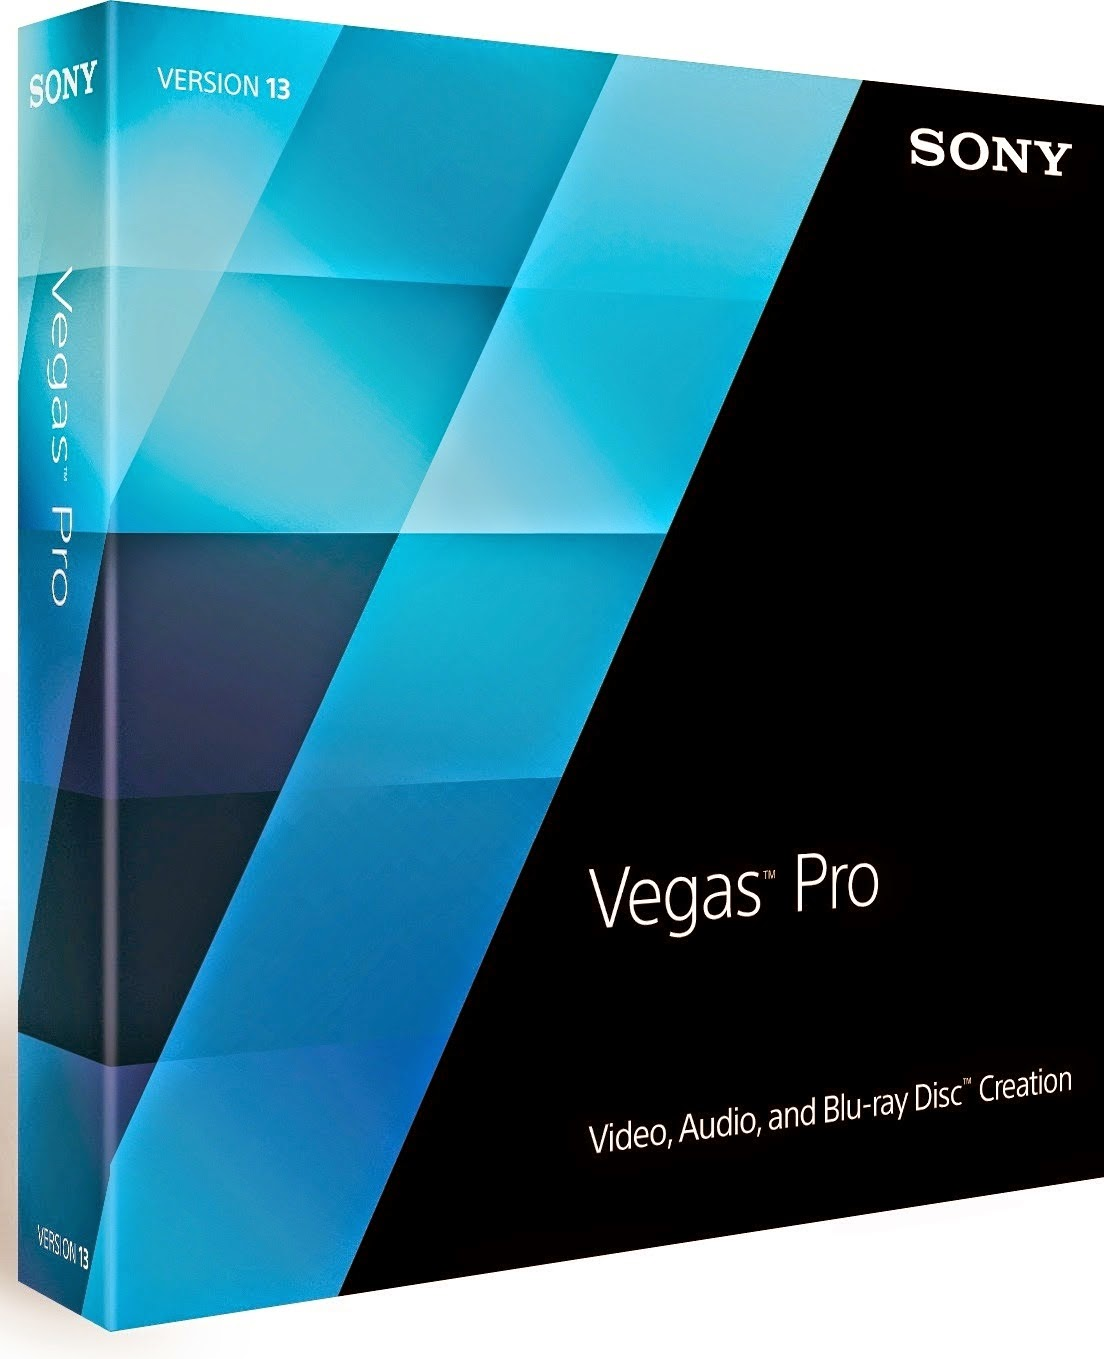 sony vegas 13 system requirements